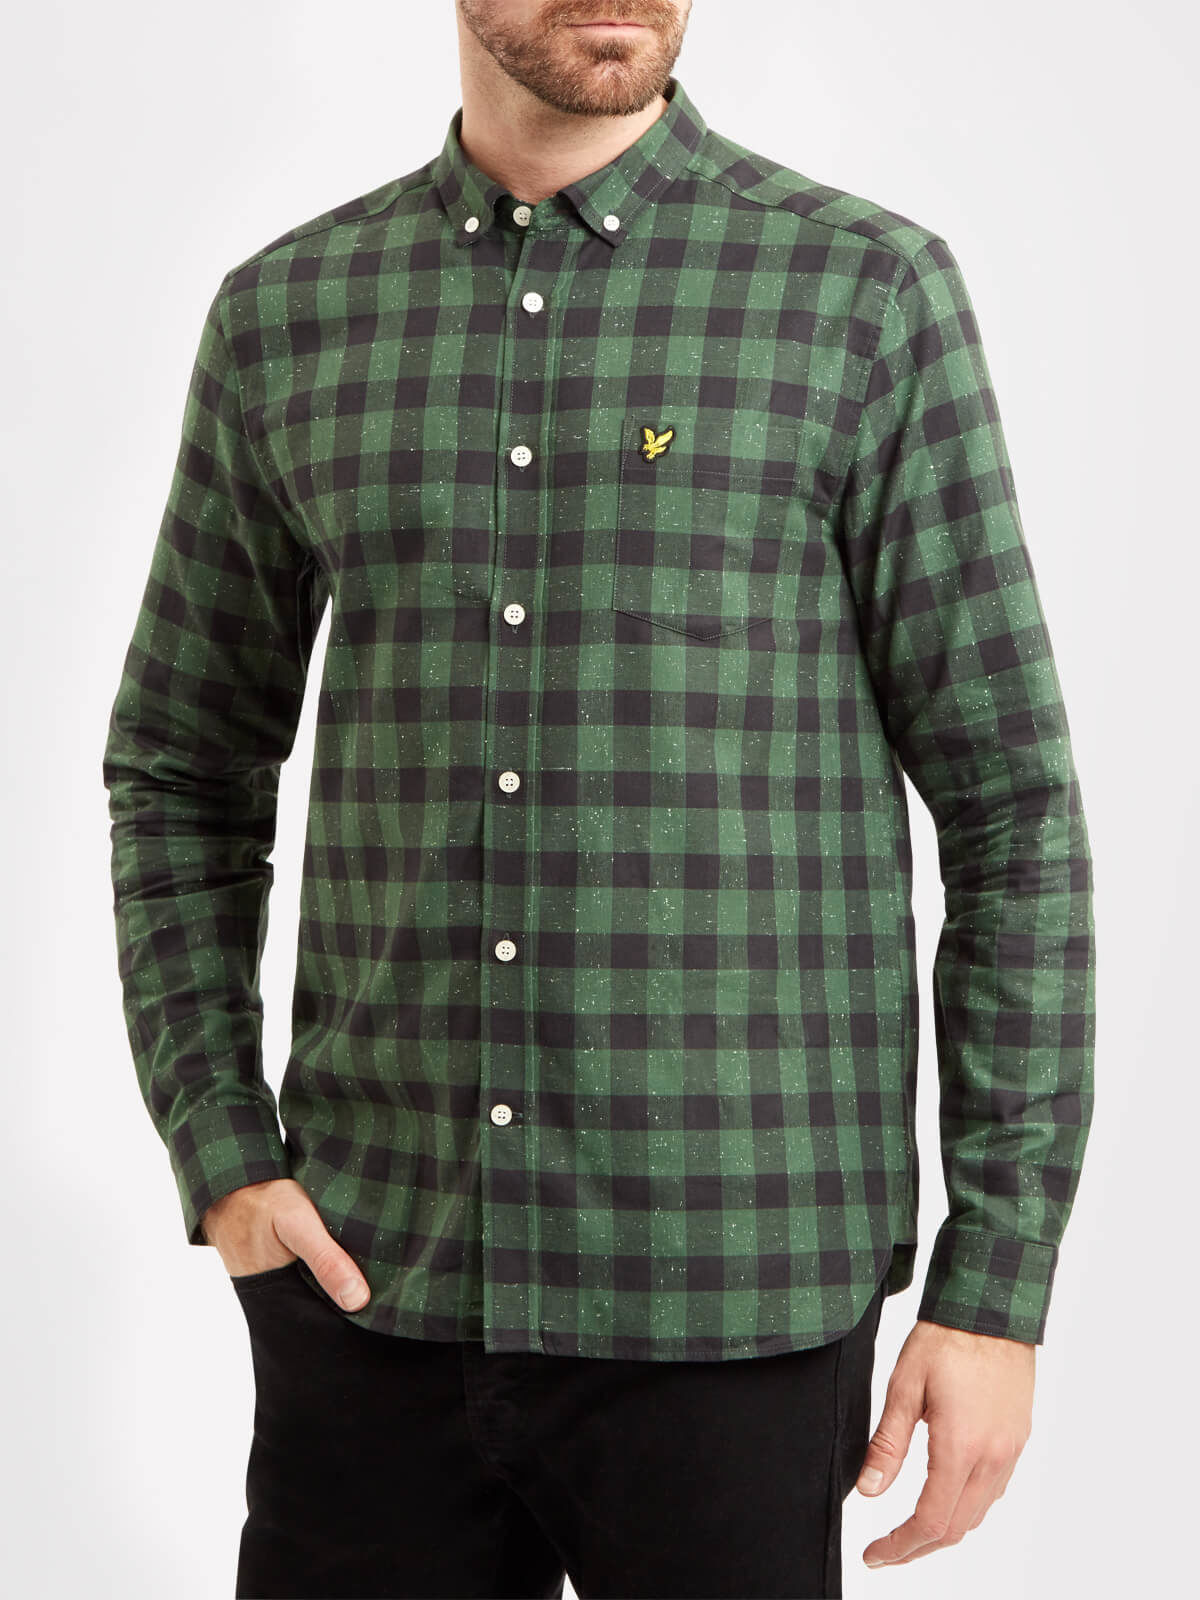 Lyle and Scott Leaf Green Flecked Check Shirt